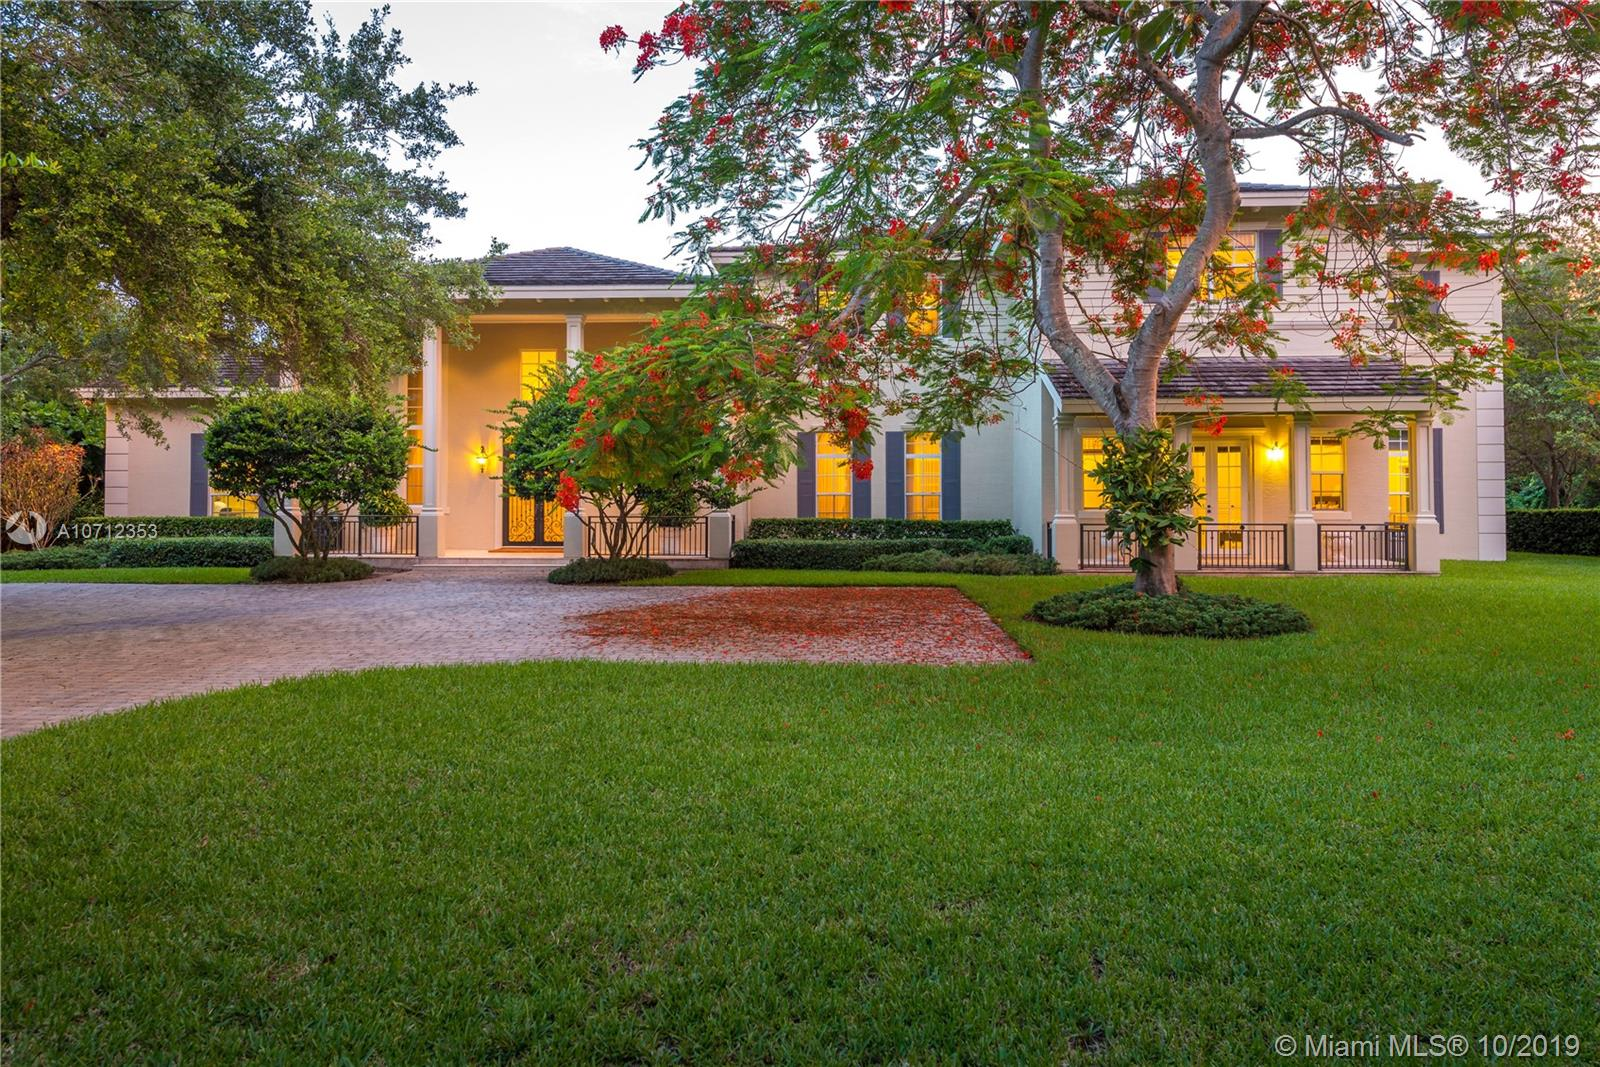 6050 SW 120th St, Kendall, Florida